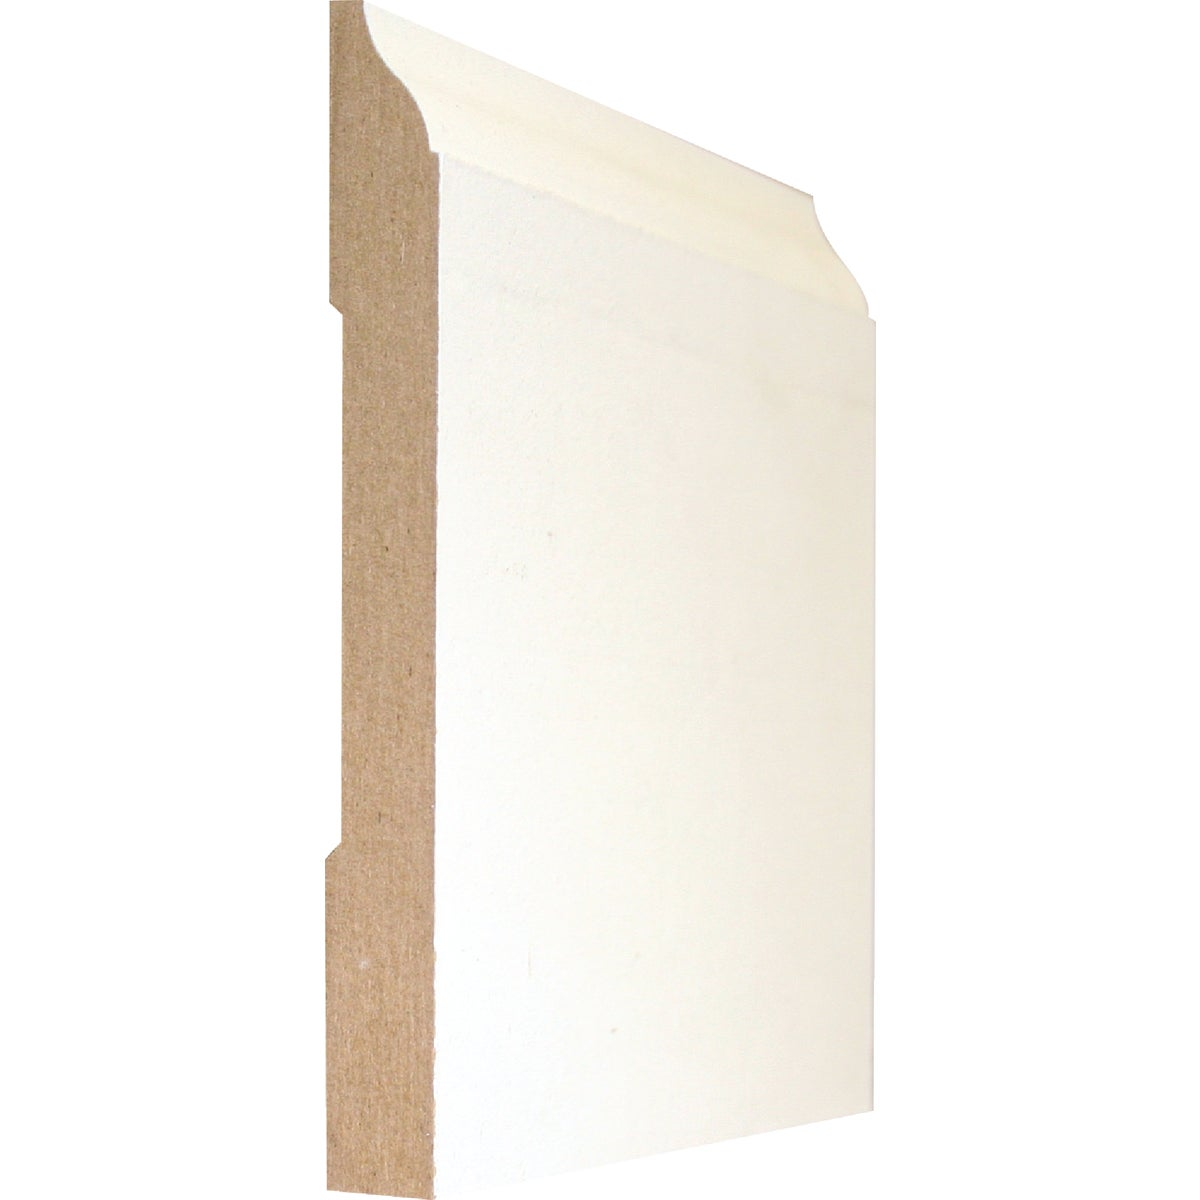 4-1/4X8' PMDF COL BASE - 62080MDFP by Jim White Millwork